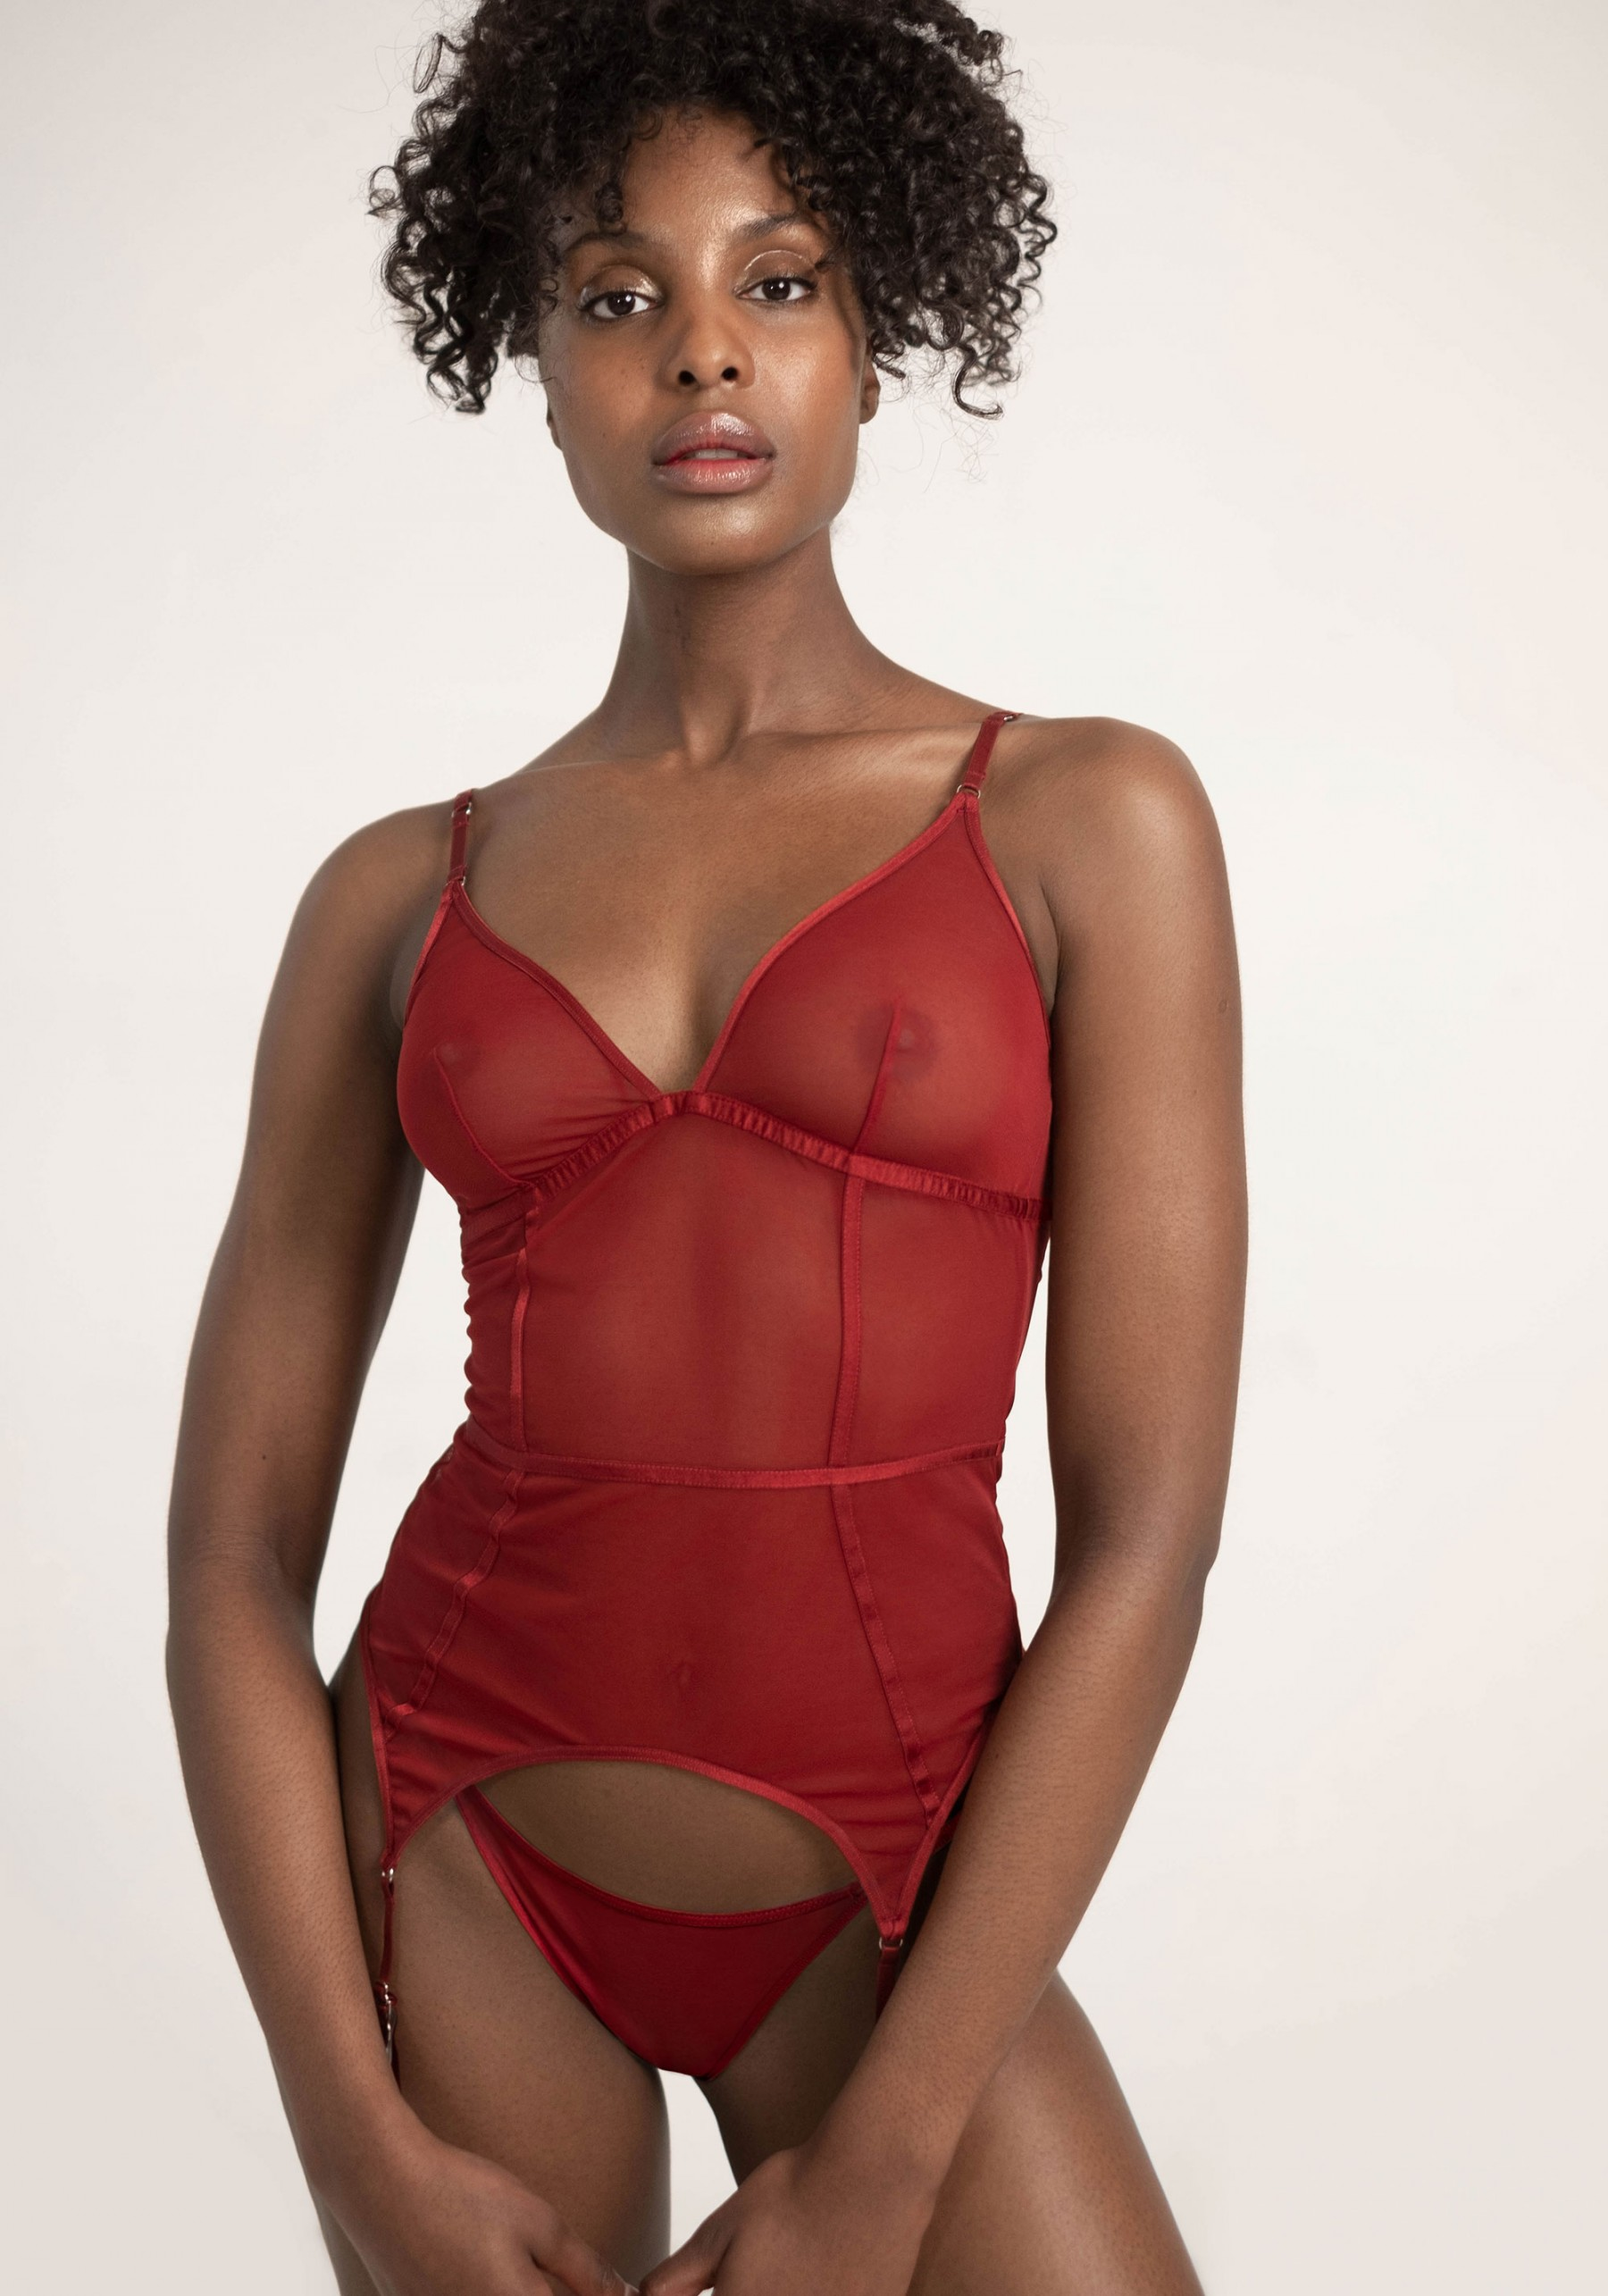 15 Sheer Lingerie Sets That Are Perfect For Valentine s Day (Or Any Time, Really)